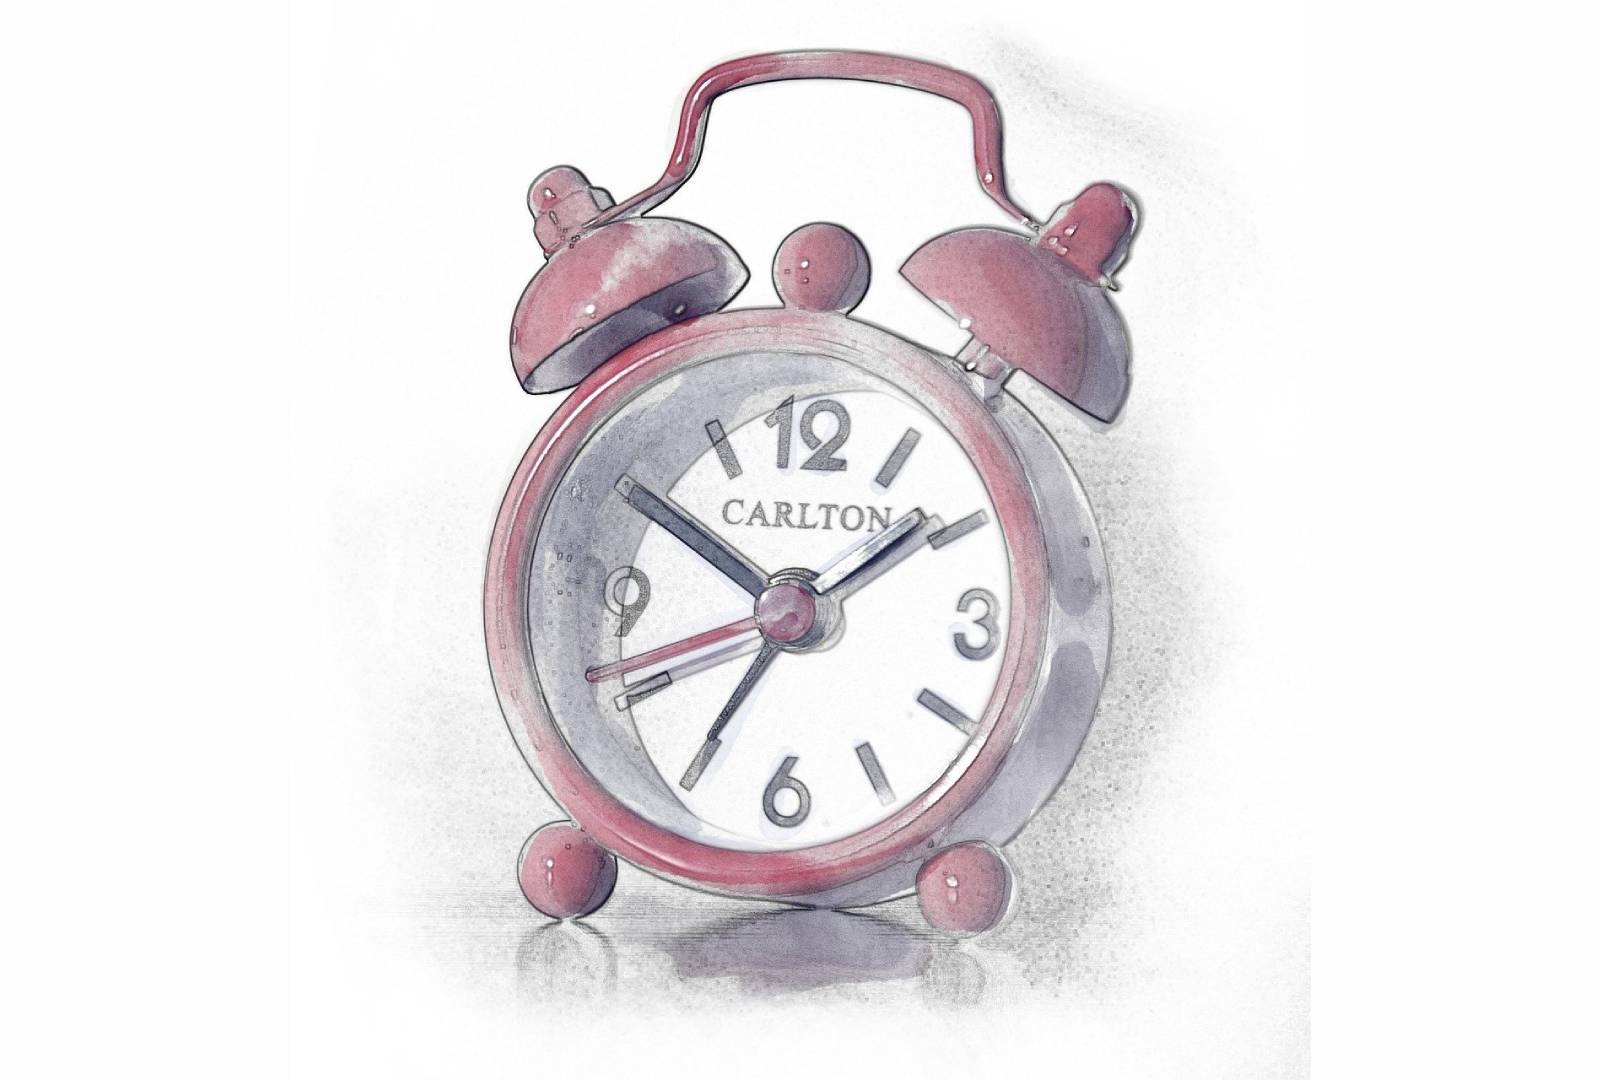 Time Management, Small Businesses, and Patience: What's the Key to Reaching Your Goals?